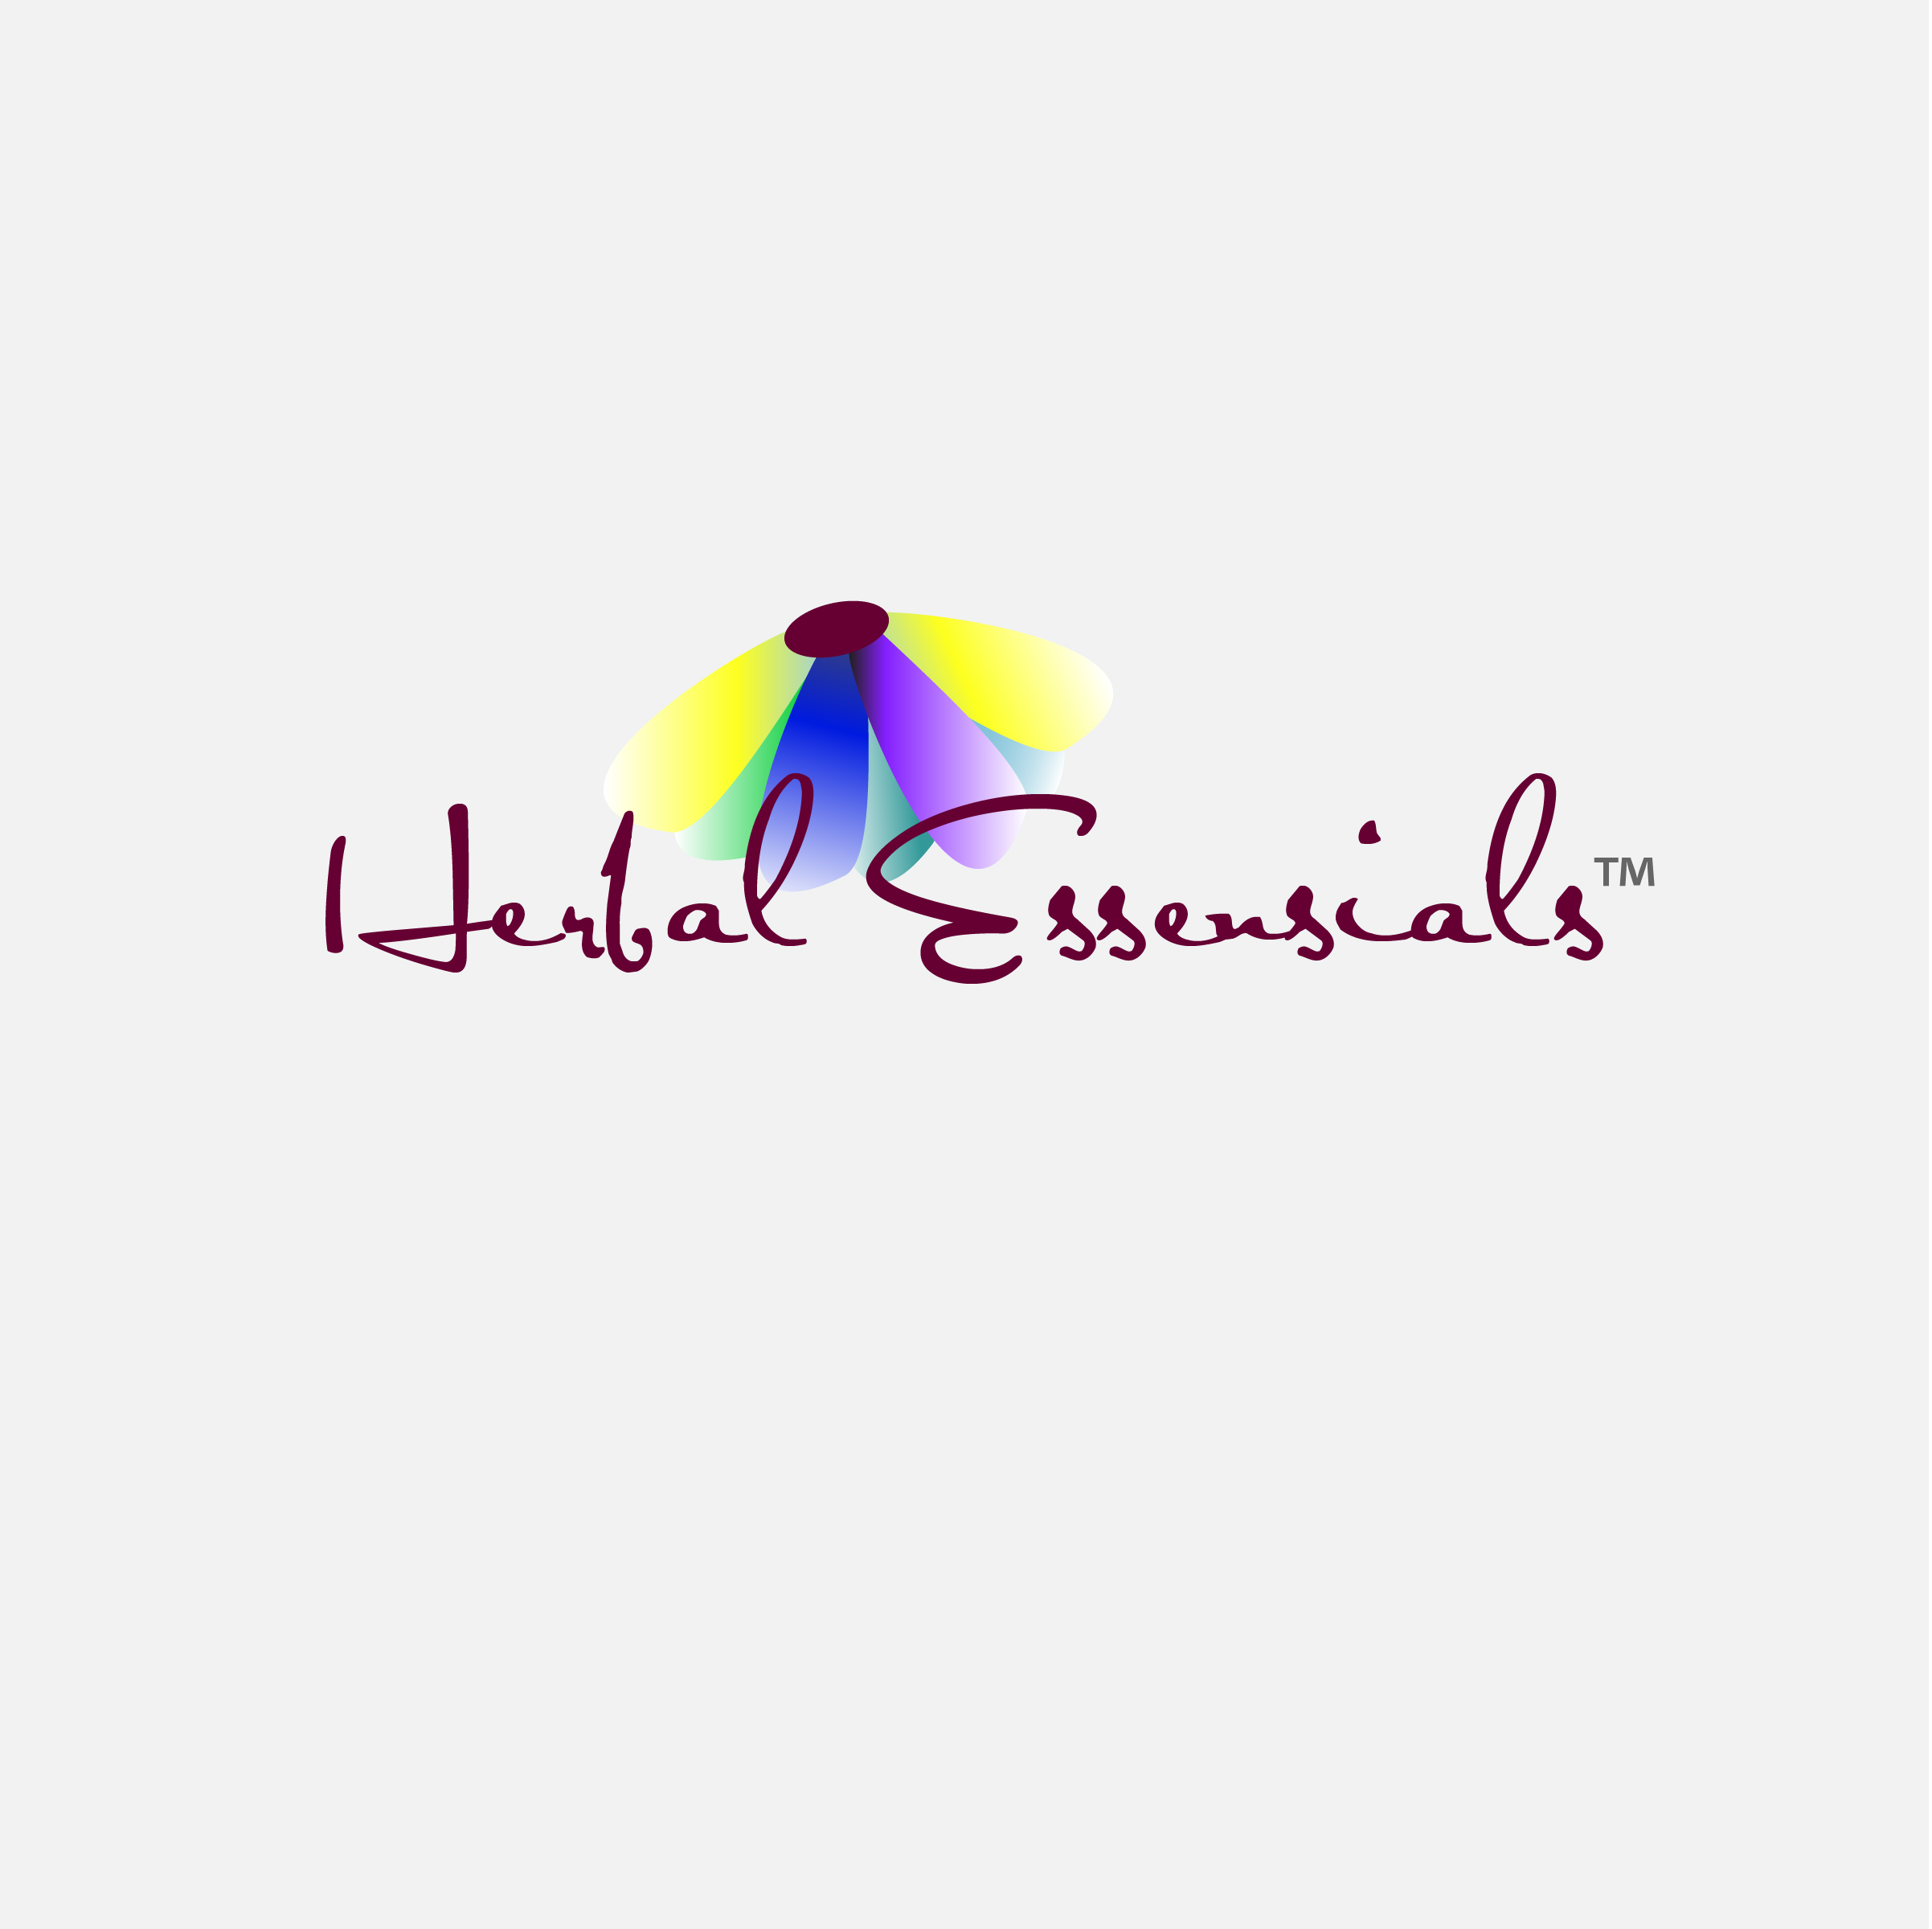 Logo Design by Nancy Grant - Entry No. 93 in the Logo Design Contest Captivating Logo Design for Herbal Essensuals.